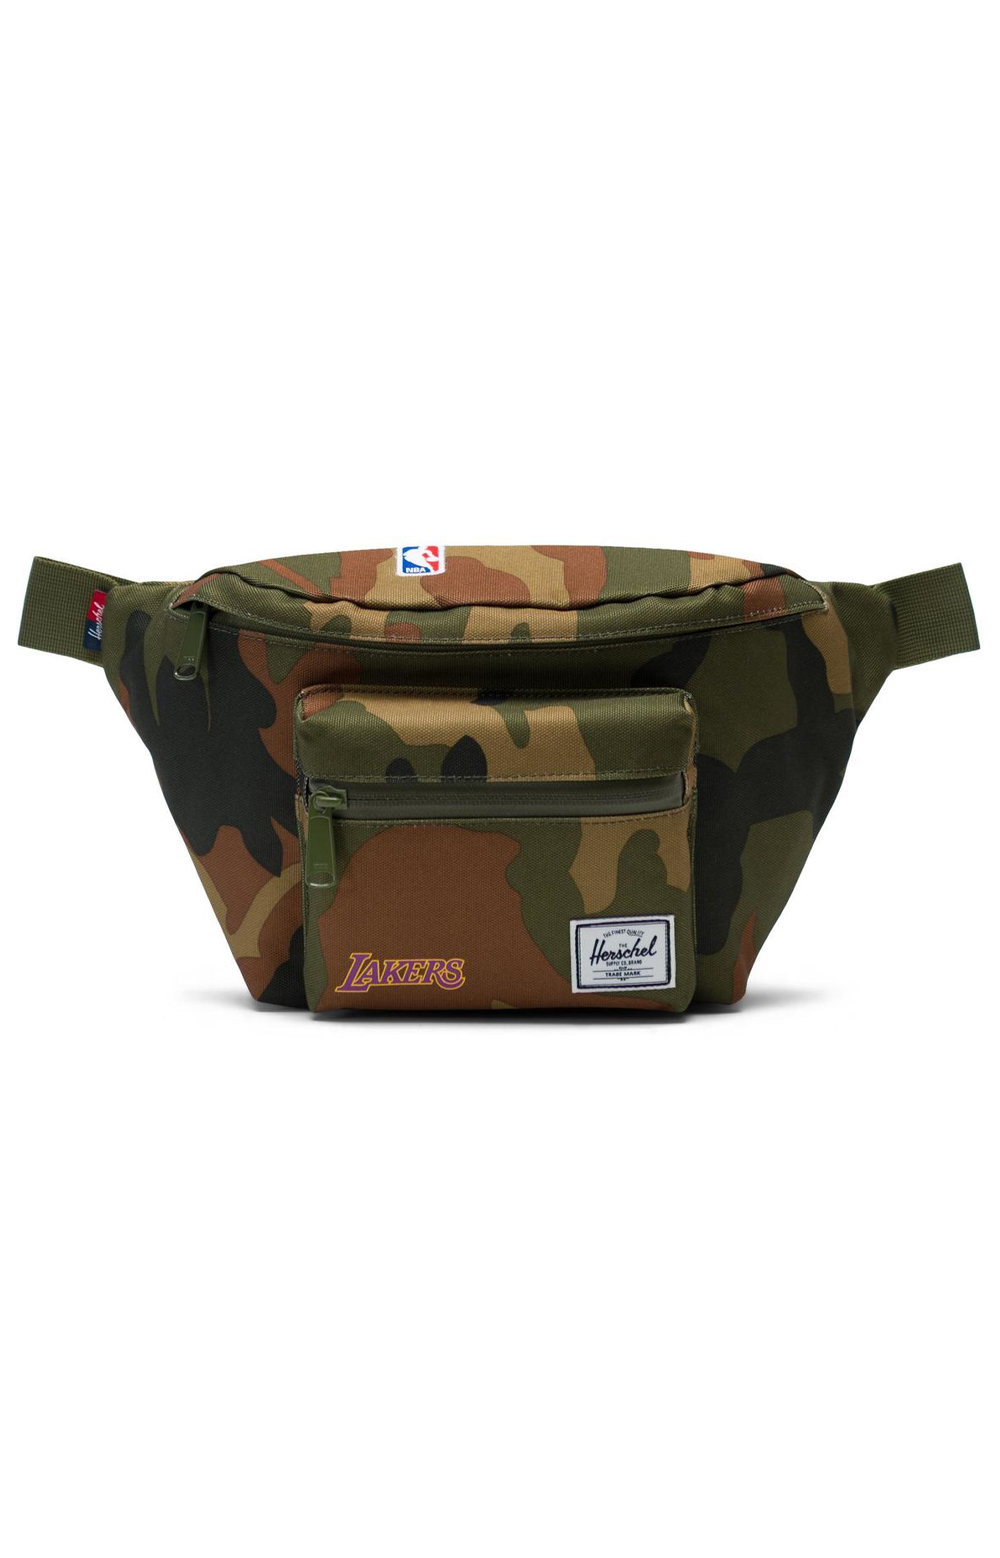 Seventeen Lakers Fanny Pack - Woodland Camo